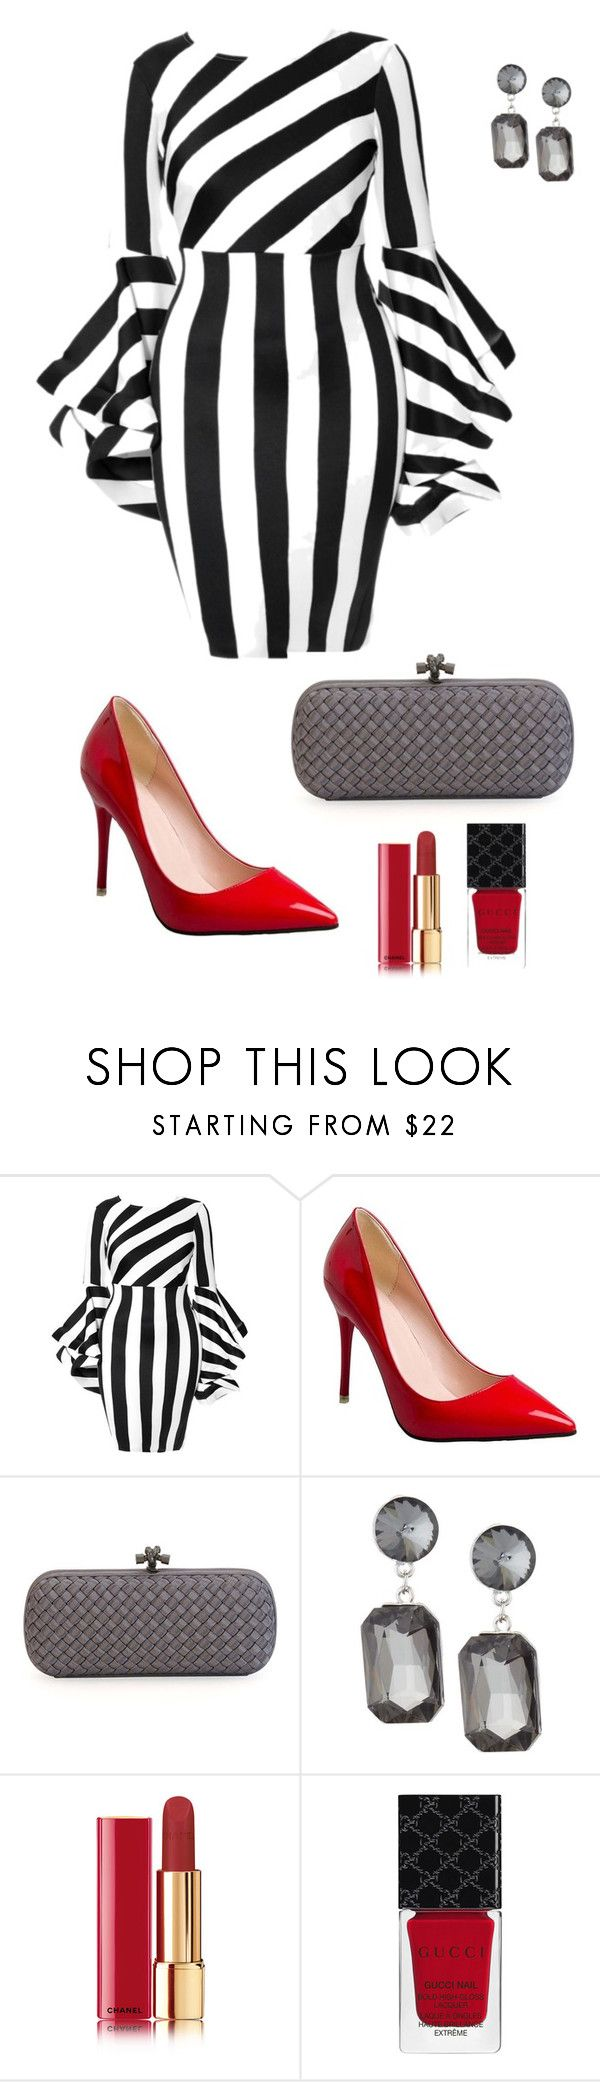 """Untitled #871"" by ladyasdis ❤ liked on Polyvore featuring Bottega Veneta, Kenneth Jay Lane, Chanel and Gucci"